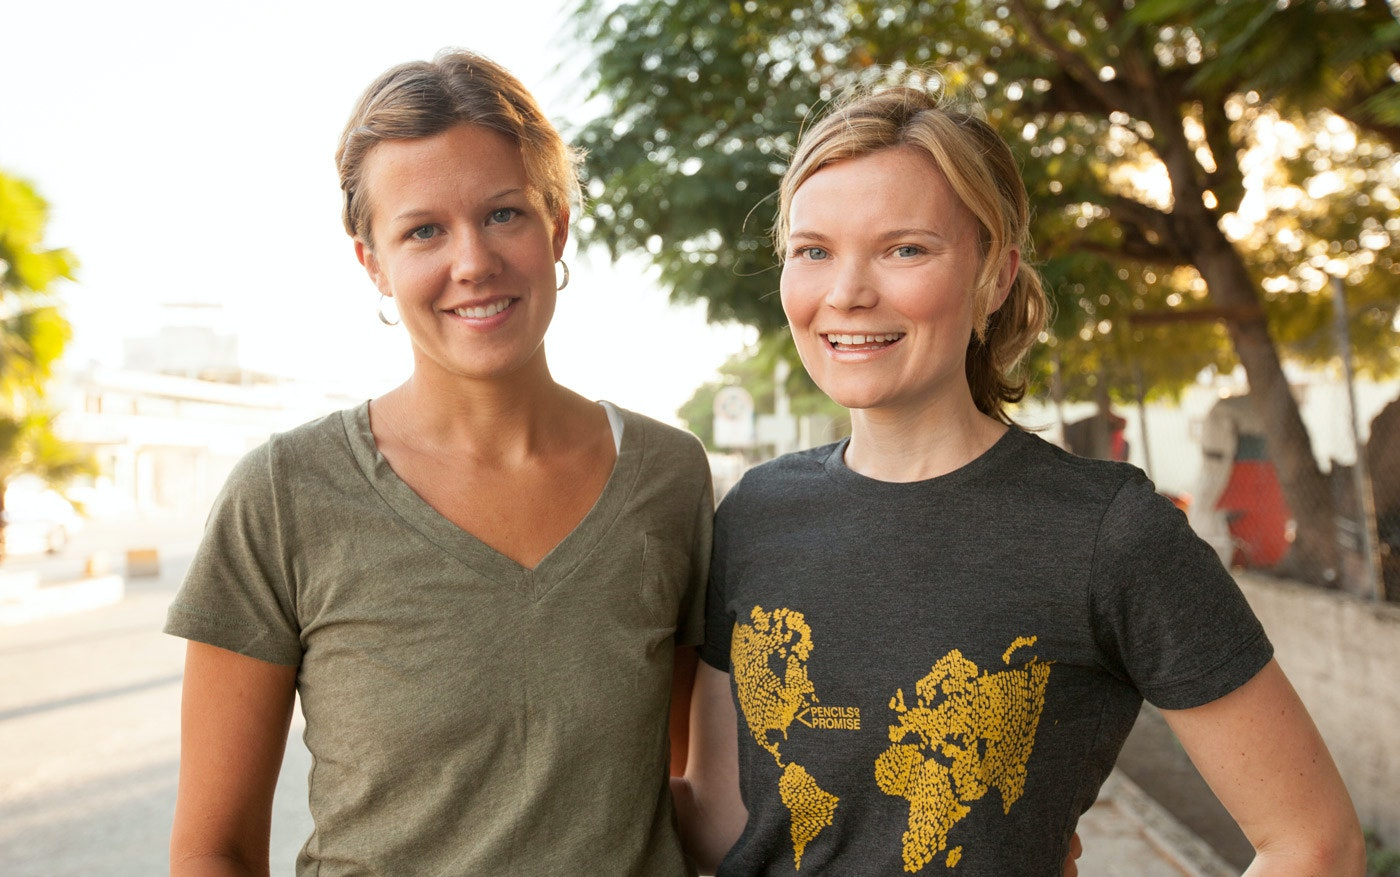 JODY LANDERS, CO-FOUNDER AND BOARD MEMBER AND BECKY STRAW INPort au Prince, Haiti.